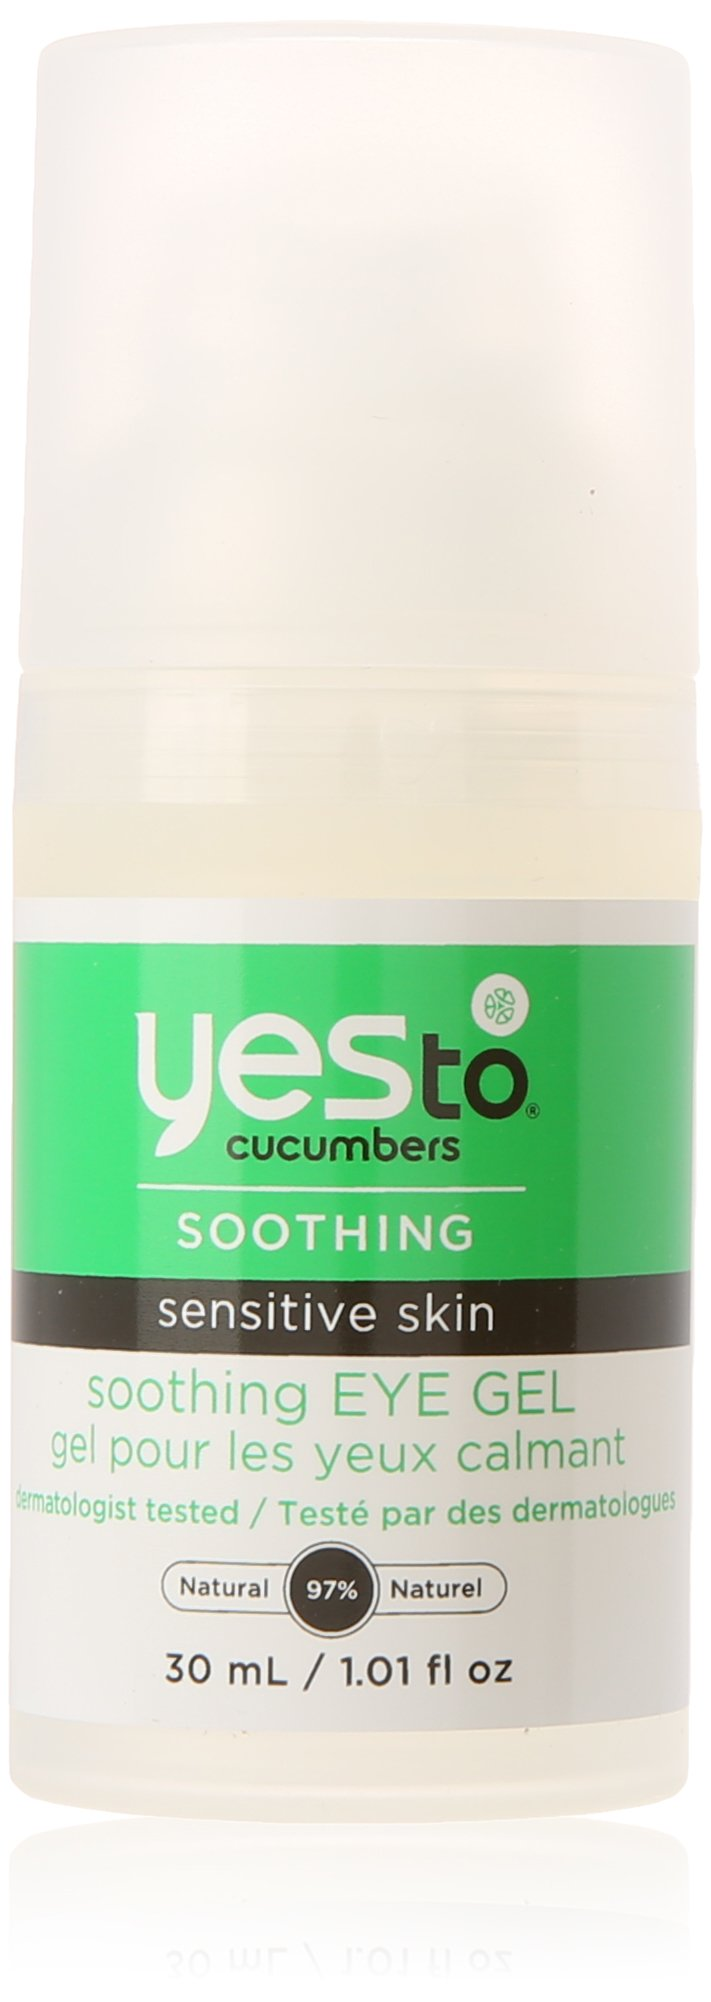 Yes To Cucumber Soothing Eye Gel, 1.01 Fluid Ounce by Yes To